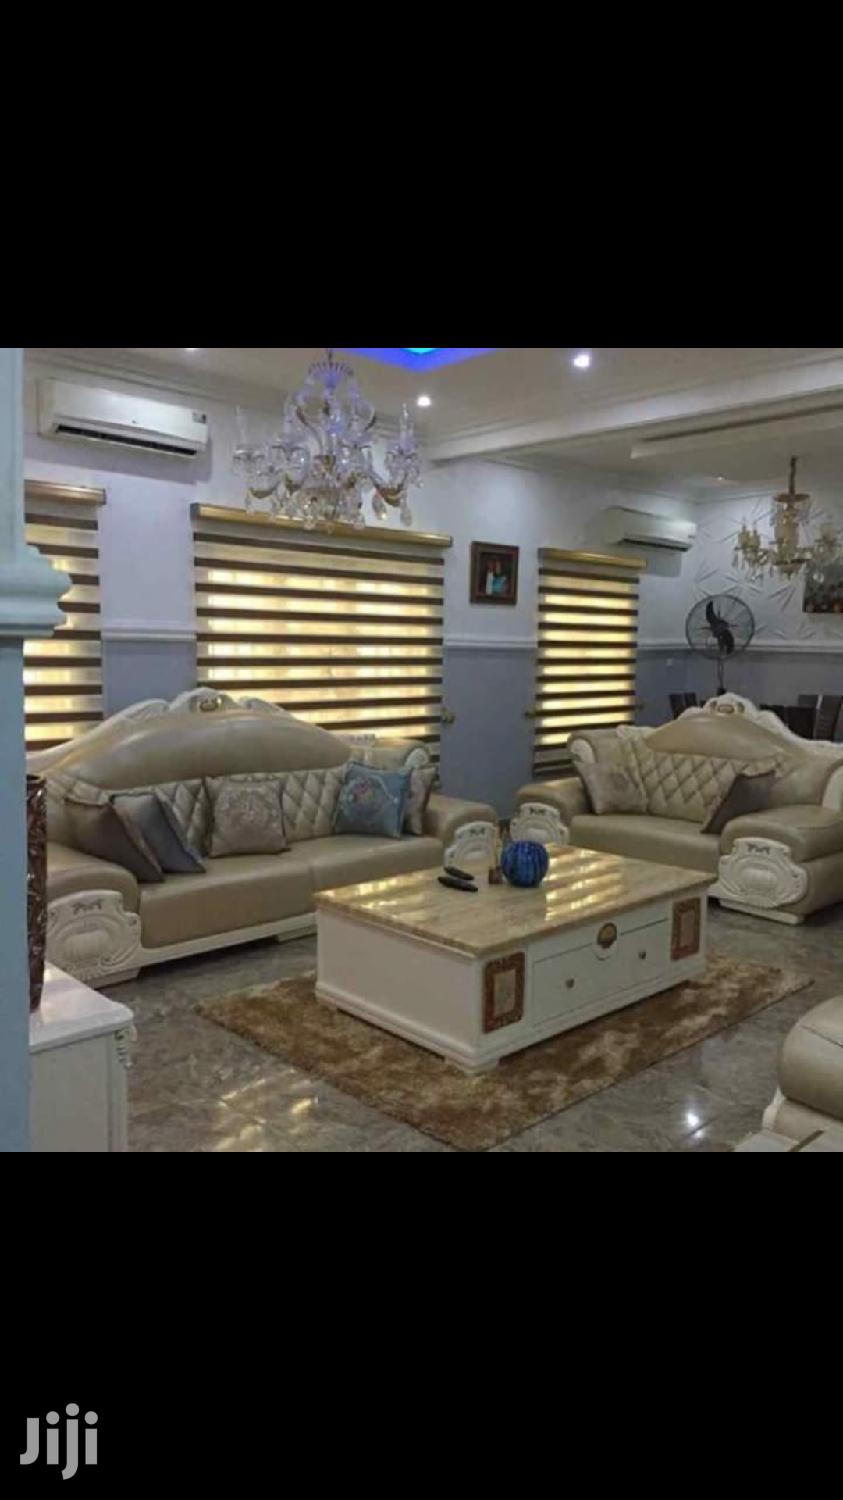 Exotic Curtains And Blinds | Home Accessories for sale in Asokoro, Abuja (FCT) State, Nigeria